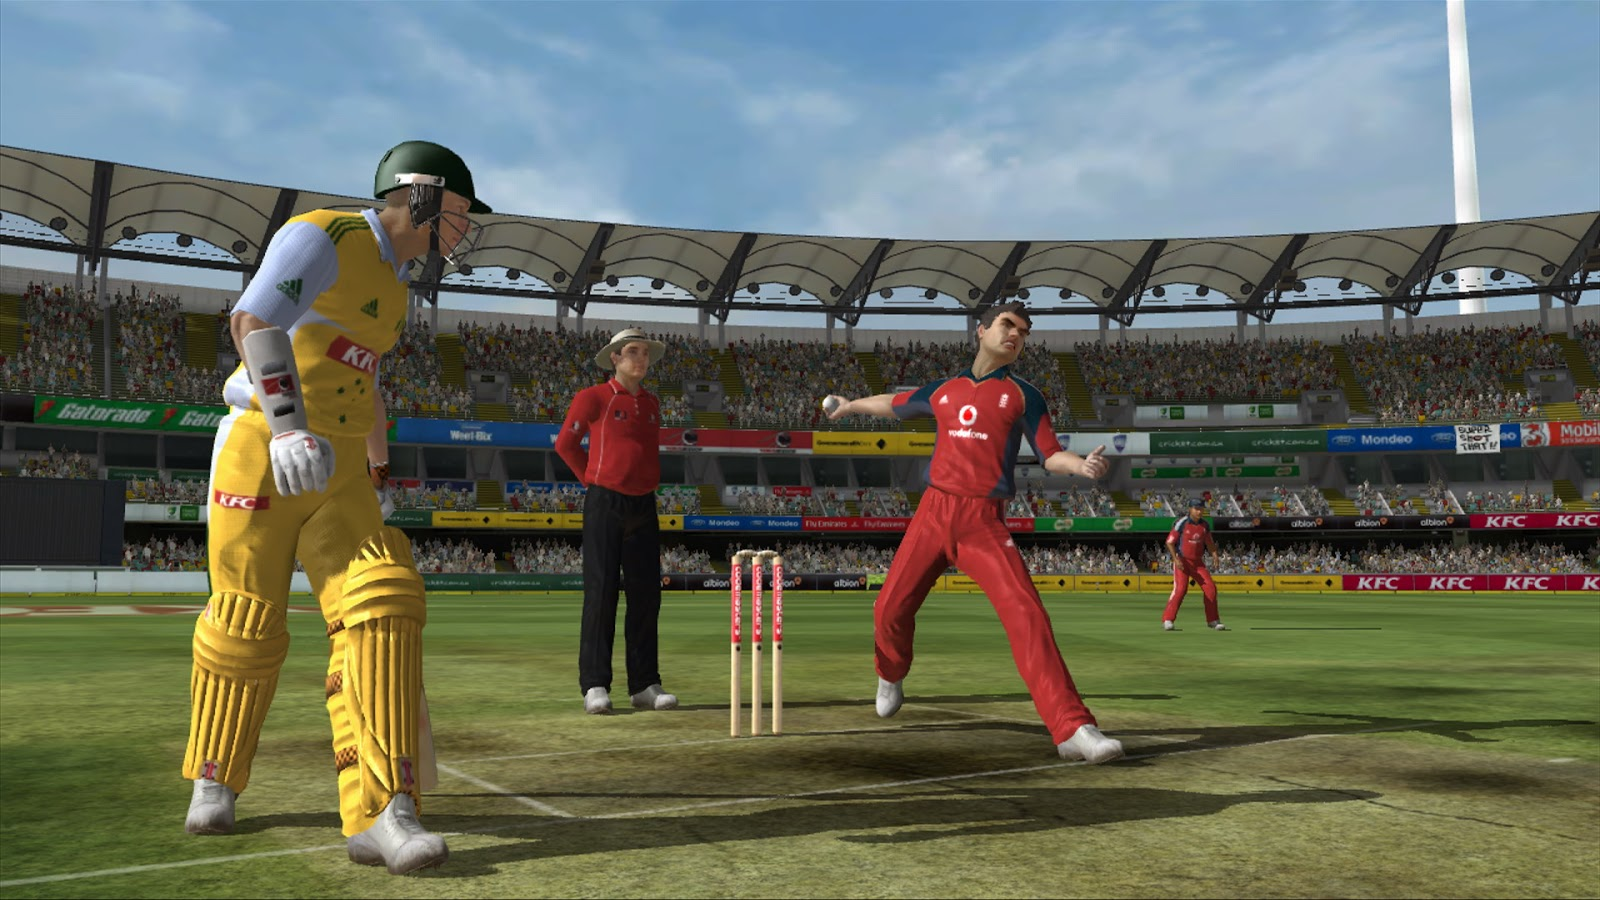 Ea sports cricket 2012 game – free download full version for pc.